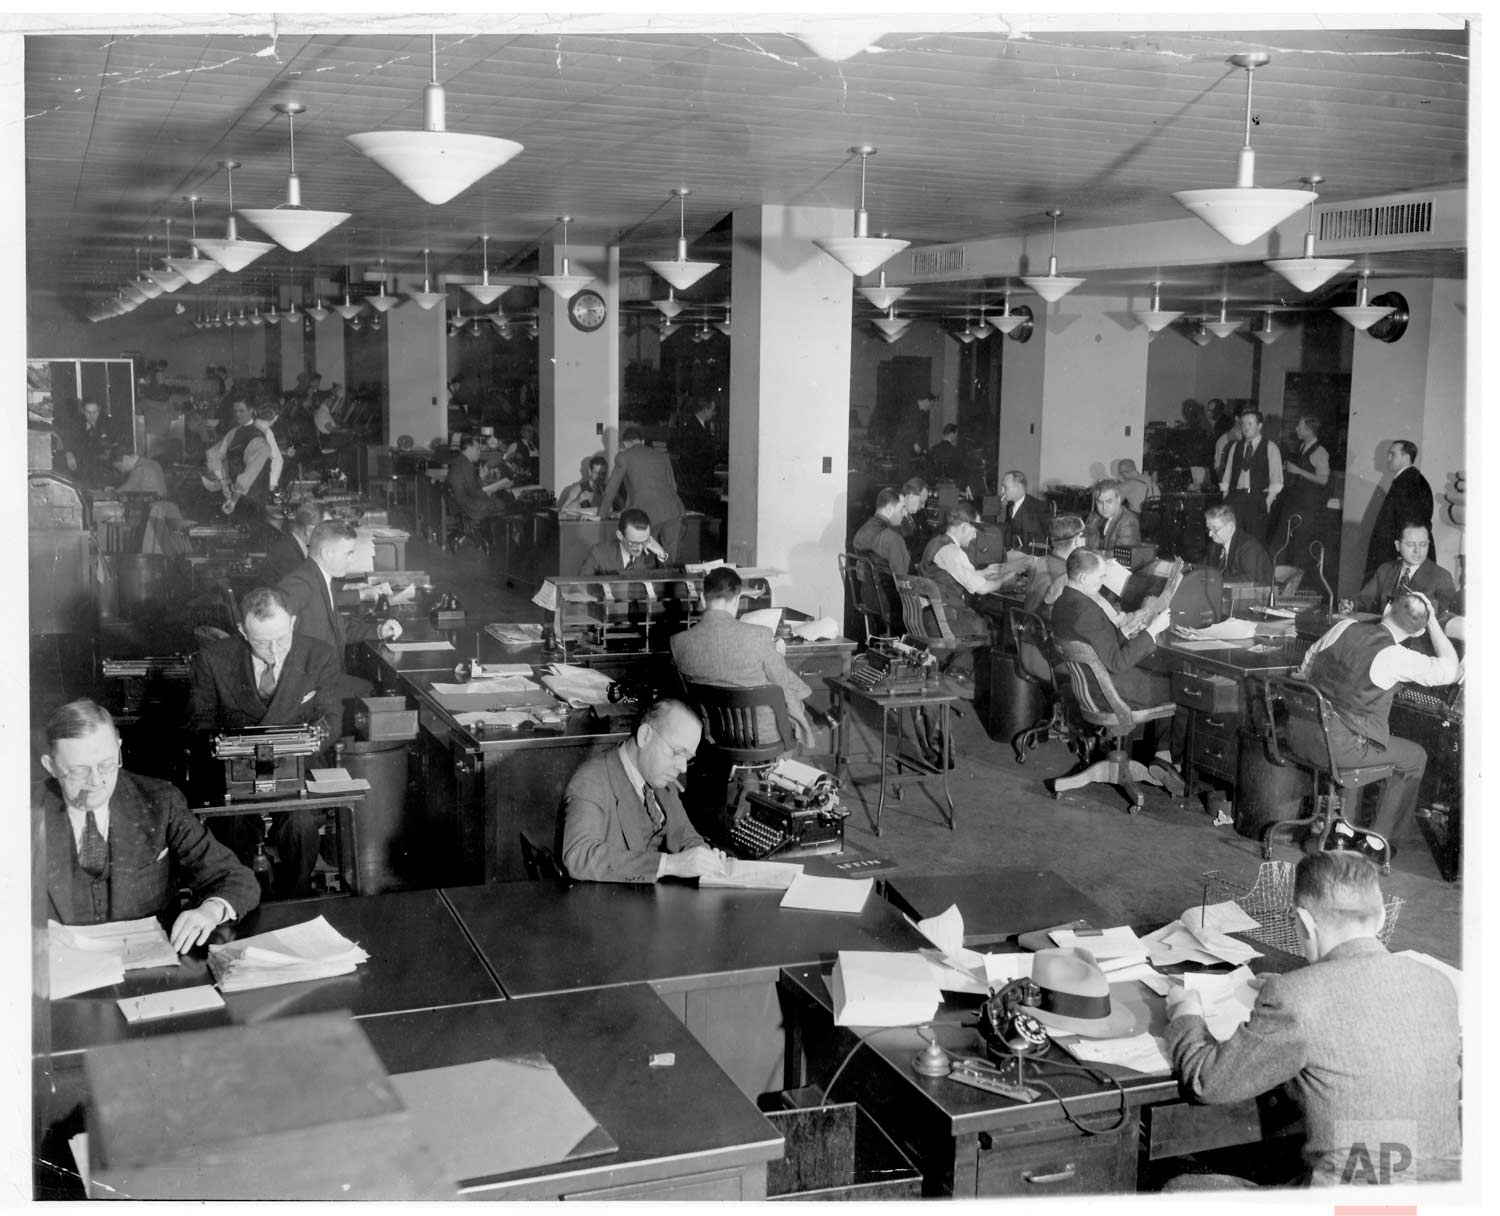 The newsroom at Associated Press headquarters at 50 Rockefeller Plaza, 1939. (AP Photo/Corporate Archives)